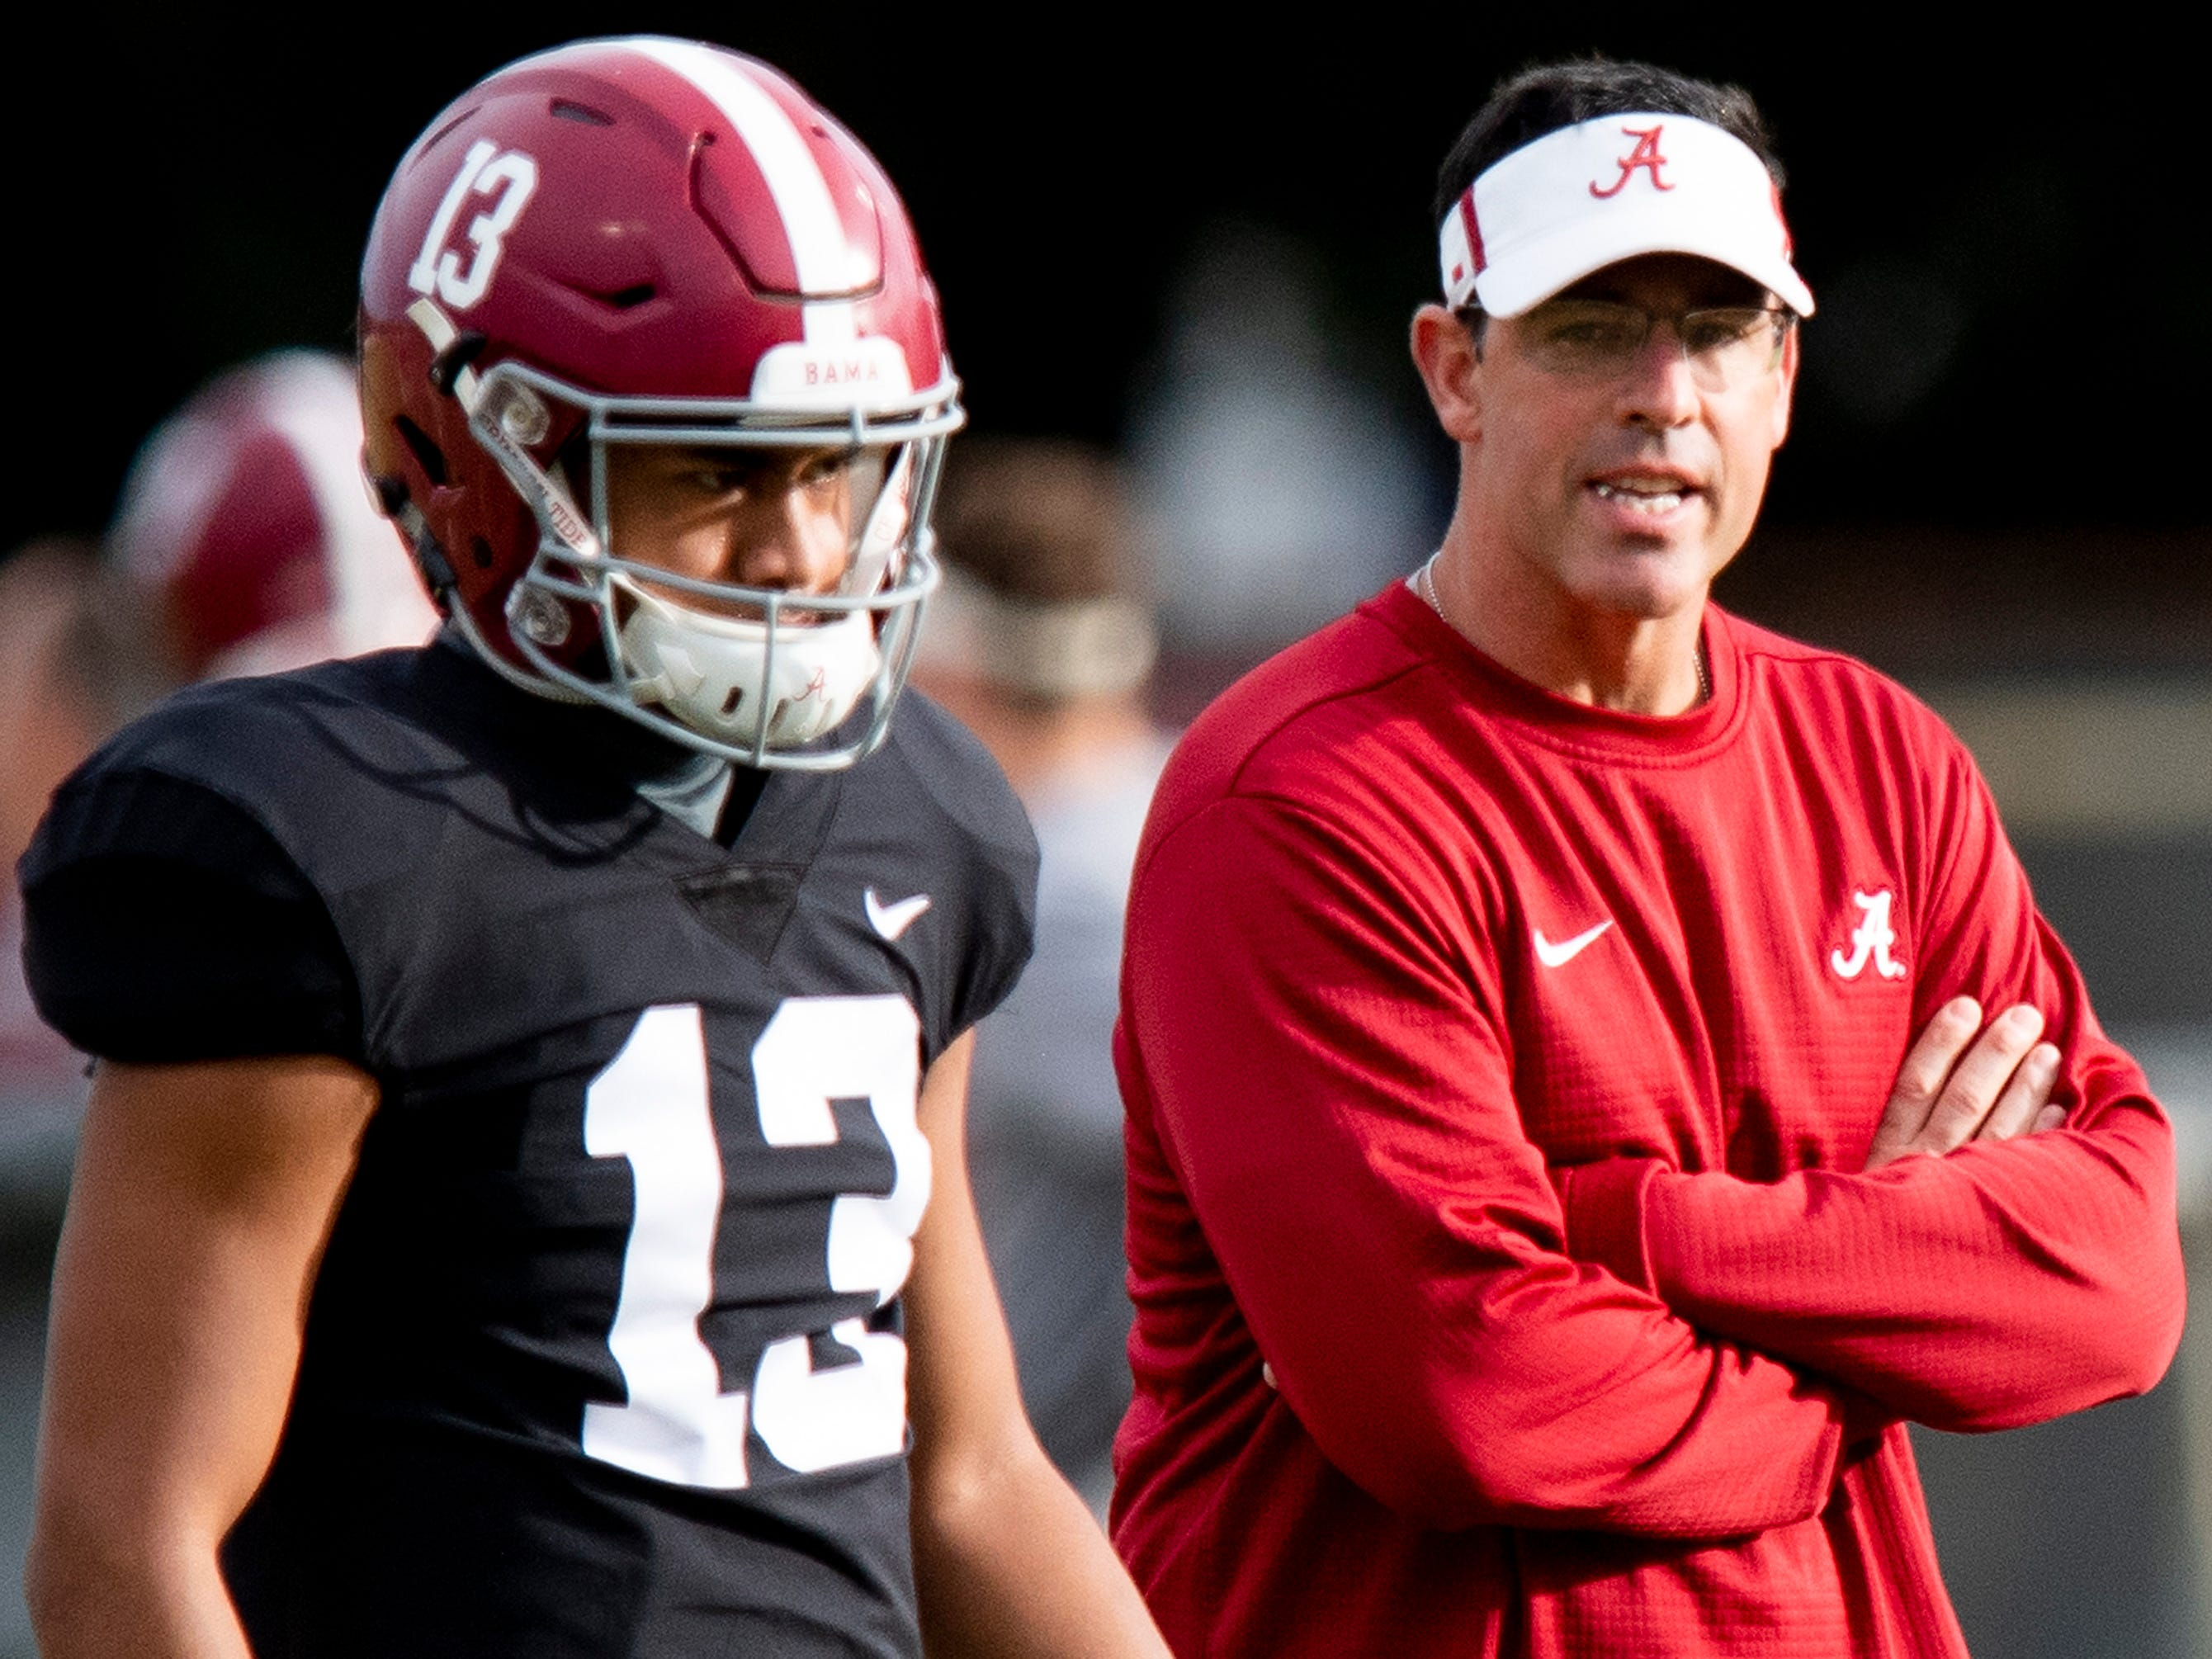 Alabama quarterbacks coach Dan Enos talks with quarterback Tua Tagovailoa (13) during Alabama's practice on the Barry University campus in Miami Shores, Fla., on Thursday December 27, 2018. Alabama plays Oklahoma in the Orange Bowl on Saturday.